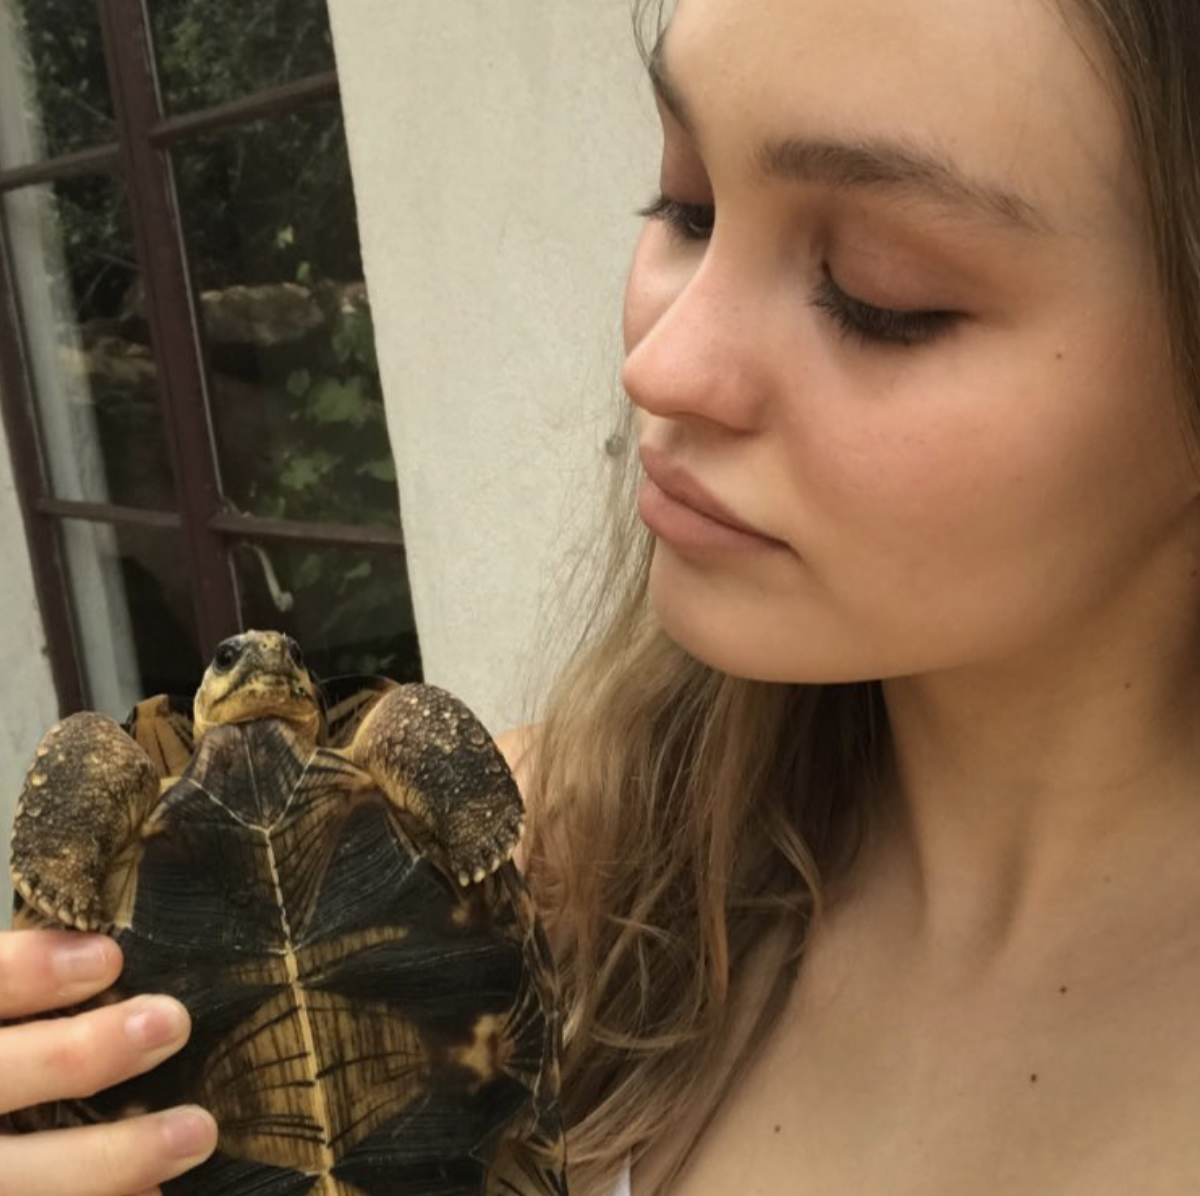 Instagram Lily-Rose Depp nudes (91 photos), Topless, Fappening, Instagram, butt 2006